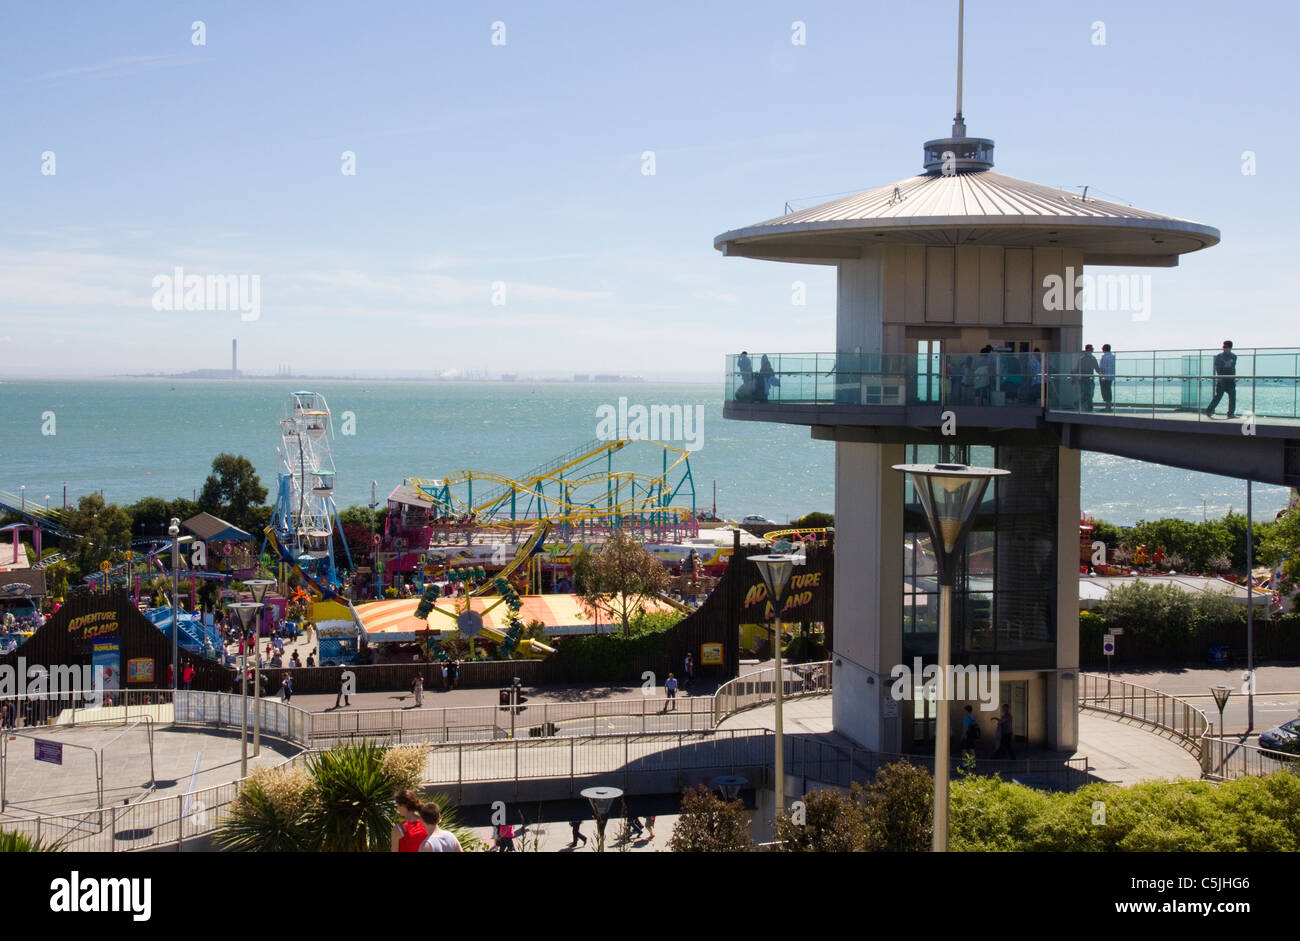 Viewpoint at Southend-on-Sea Essex - Stock Image